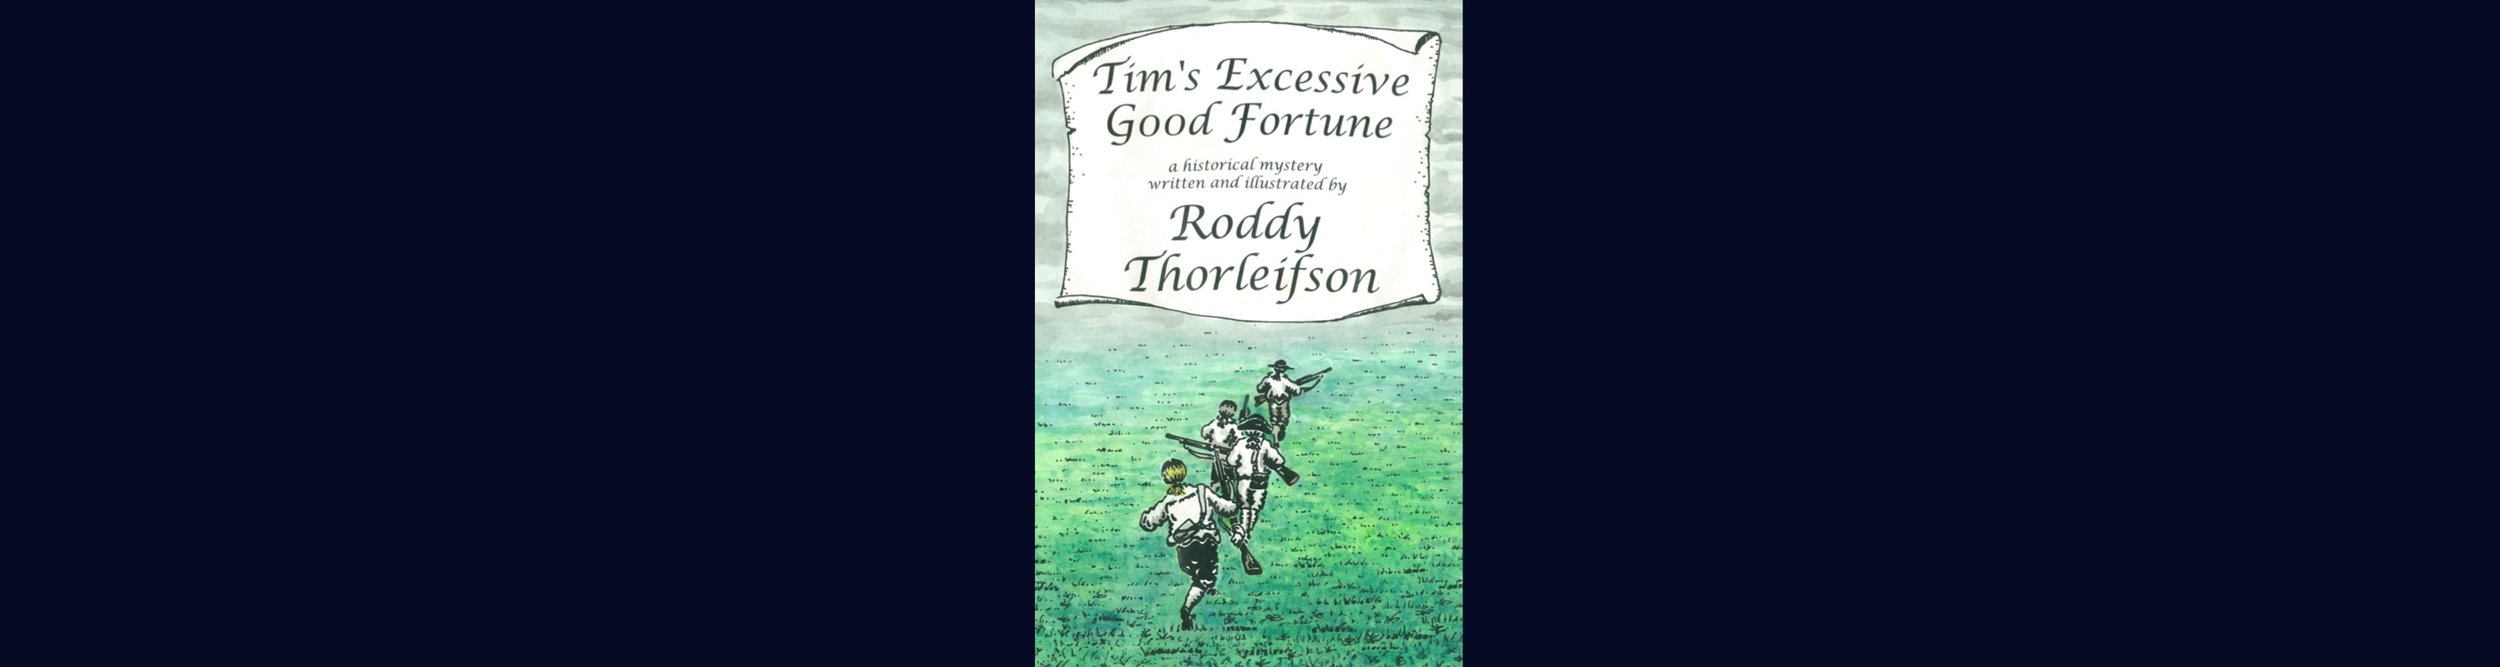 """It is the third year of the American Revolution and Tim Euston, a seventeen-year-old carpenter's apprentice, has arrived in Morristown, New Jersey. George Washington's army had just marched out to face the British, and Tim is eager to follow after them and join up as a common foot soldier. But before he can leave, Tim experiences some spectacular good luck. He impresses a drunken captain with military knowledge gained through his study of officers' manuals and military histories. The captain impulsively decides he will recommend Tim for an officer's commission to serve as his ensign. But Tim is not the only one who has been hoping to be an officer, and as news spreads, many are envious and resentful.  The captain has barely recovered from his hangover when Tim stumbles upon the body of a murdered officer. Those who resent Tim's good fortune are quick to presume guilt. Tim now has to clear his name and as well prove he deserves a commission. But how? Is Tim's remarkable good fortune turning out to be excessive good fortune?  When Tim talks it over with his sister Sadie and his best friend Dan, they only want to tease him.  """"Watch out, Sadie!"""" hissed a young man's voice from the door. """"It's Tim Euston you stand before. The crazed killer! There before you, and ready to kill again, no doubt!""""  """"Dan! Will you… you don't…"""" stammered Tim.  """"Now don't worry yourself, boy,"""" said Dan Eliot as he came over to give him a pat on the shoulder. """"We'll believe that it wasn't you. At least we'll claim that we do."""" …  """"How do you know all this?"""" asked Tim.  """"The colonel's cook heard it all, over at Arnold's Tavern. She was here just now, with some shortbread to sell. And while she waited for the mistress she was telling it all to your mother. And I was there to hear.""""  """"Well! Bad news travels fast,"""" grumbled Tim.  Thorleifson's writing is clear and accessible. His language is simple but not simplistic. He anticipates the reader's questions and his research has been thorough. The stor"""